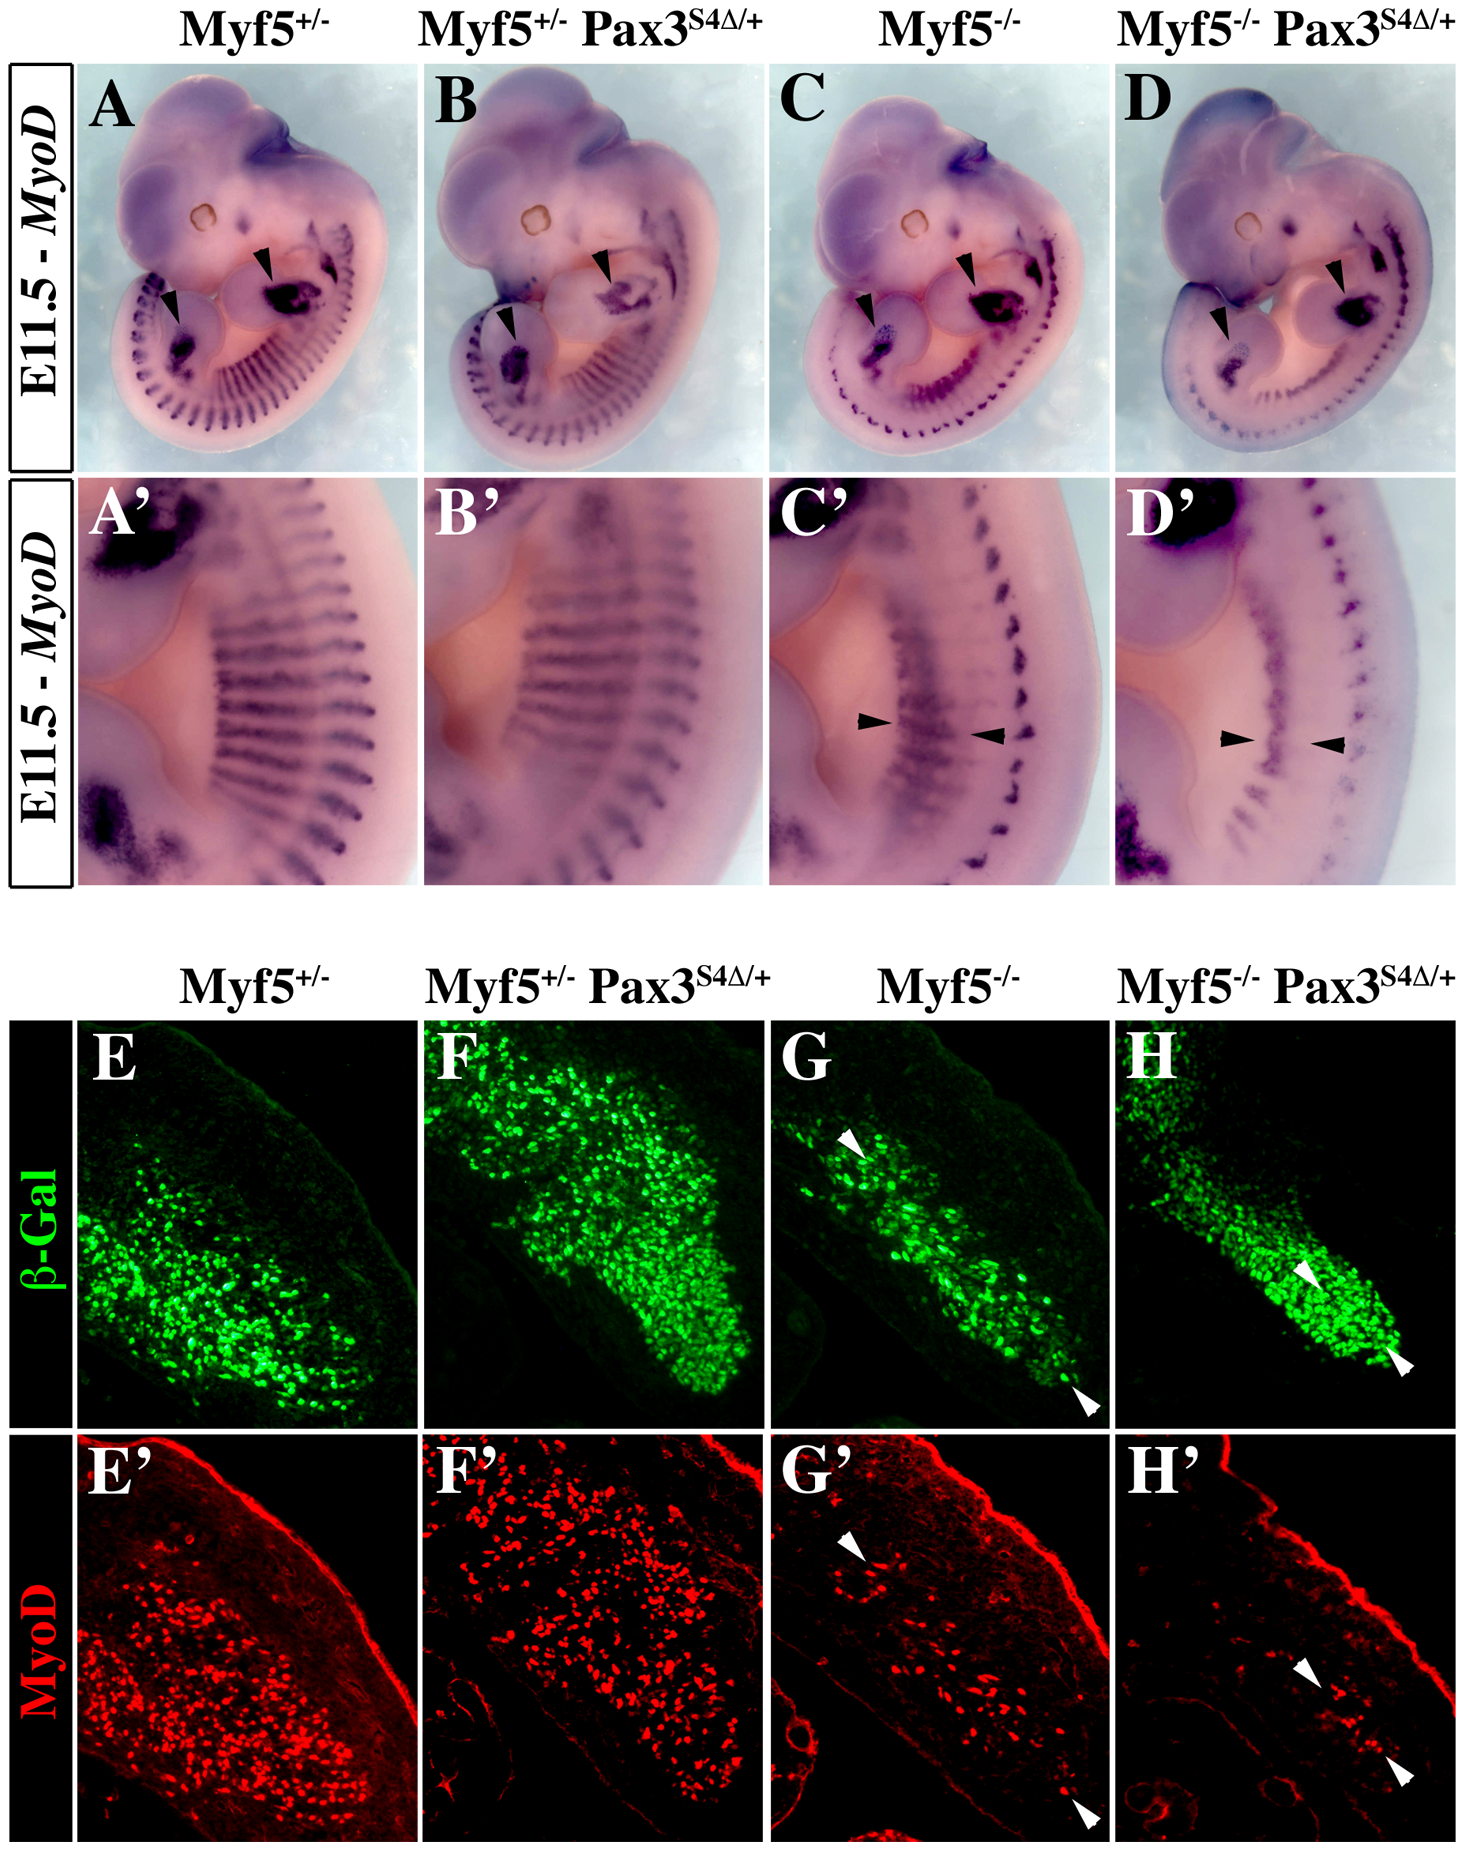 Six4Δ affects <i>Myod</i> expression and myogenesis in the absence of Myf5.